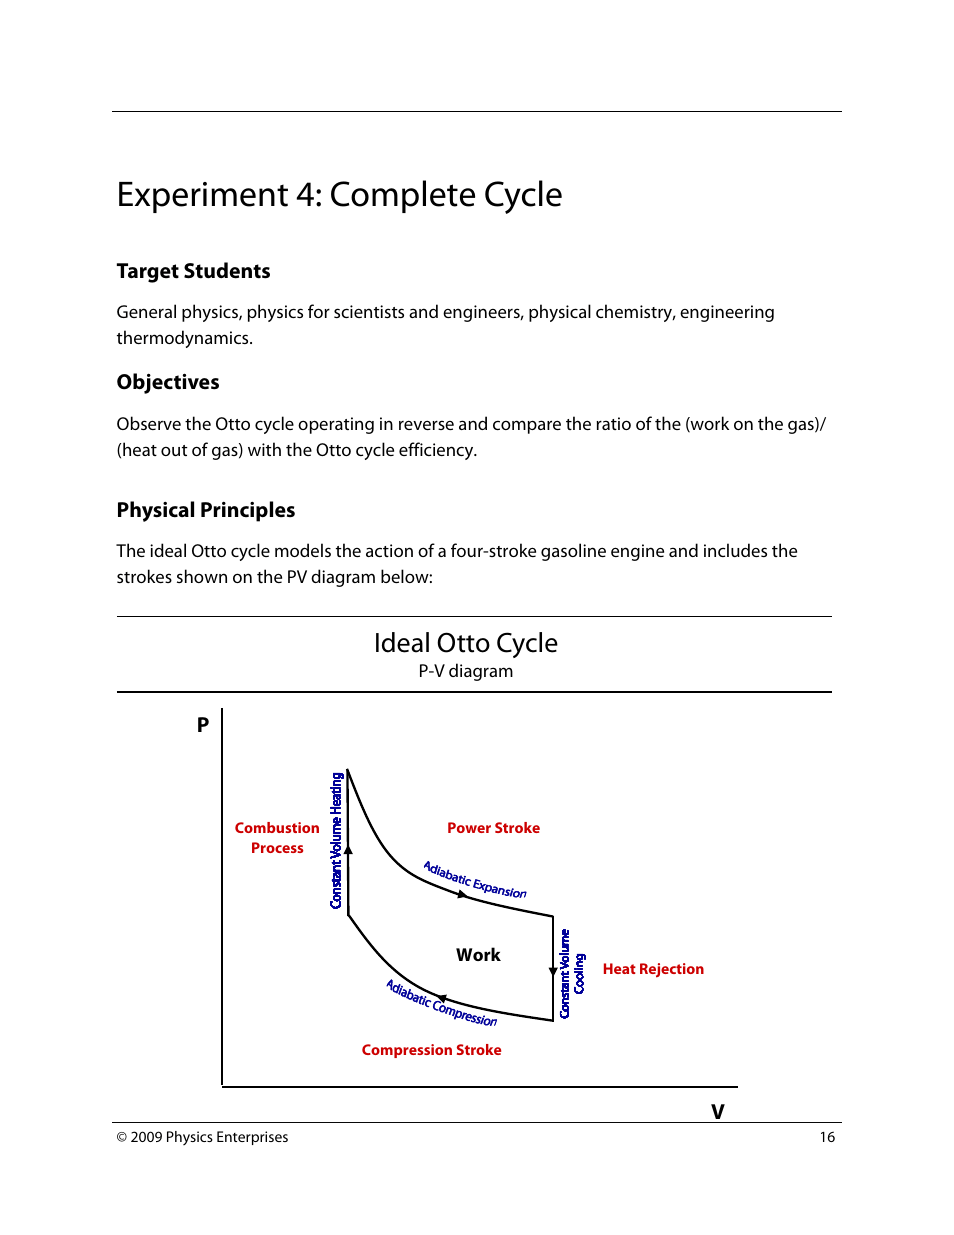 medium resolution of experiment 4 complete cycle ideal otto cycle pasco td 8565 adiabatic gas law apparatus user manual page 16 25